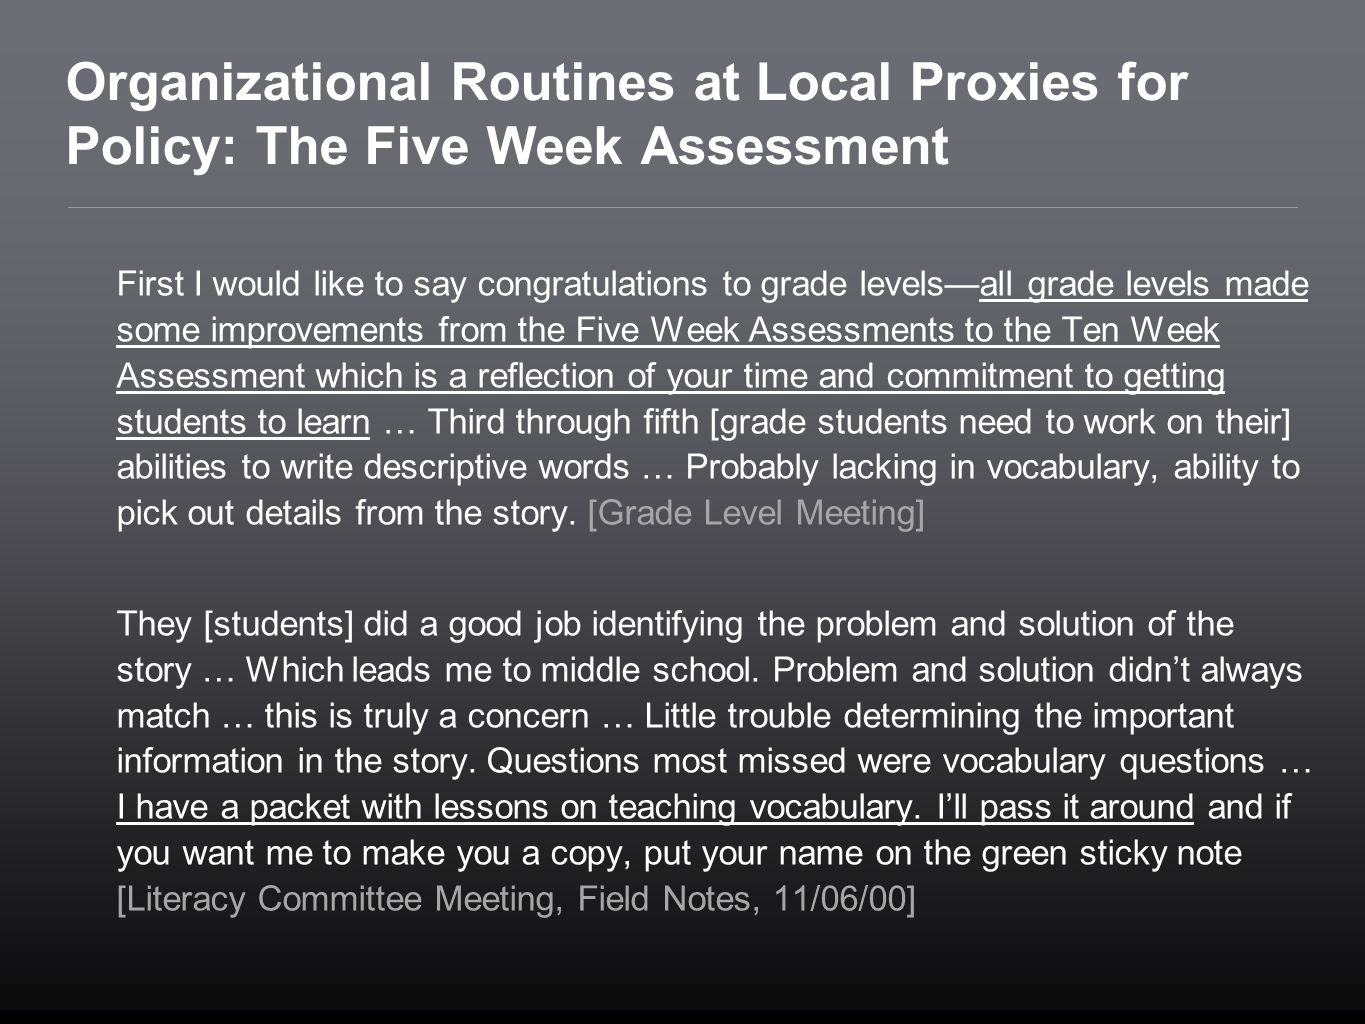 Organizational Routines at Local Proxies for Policy: The Five Week Assessment